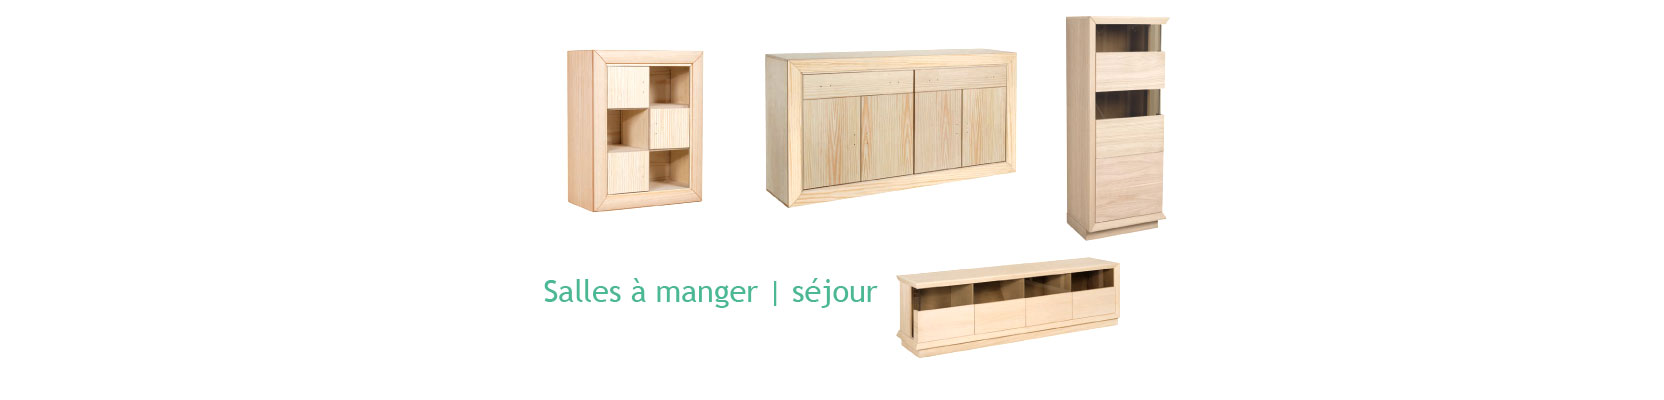 meubles en bois brut peindre meubles guerrero. Black Bedroom Furniture Sets. Home Design Ideas